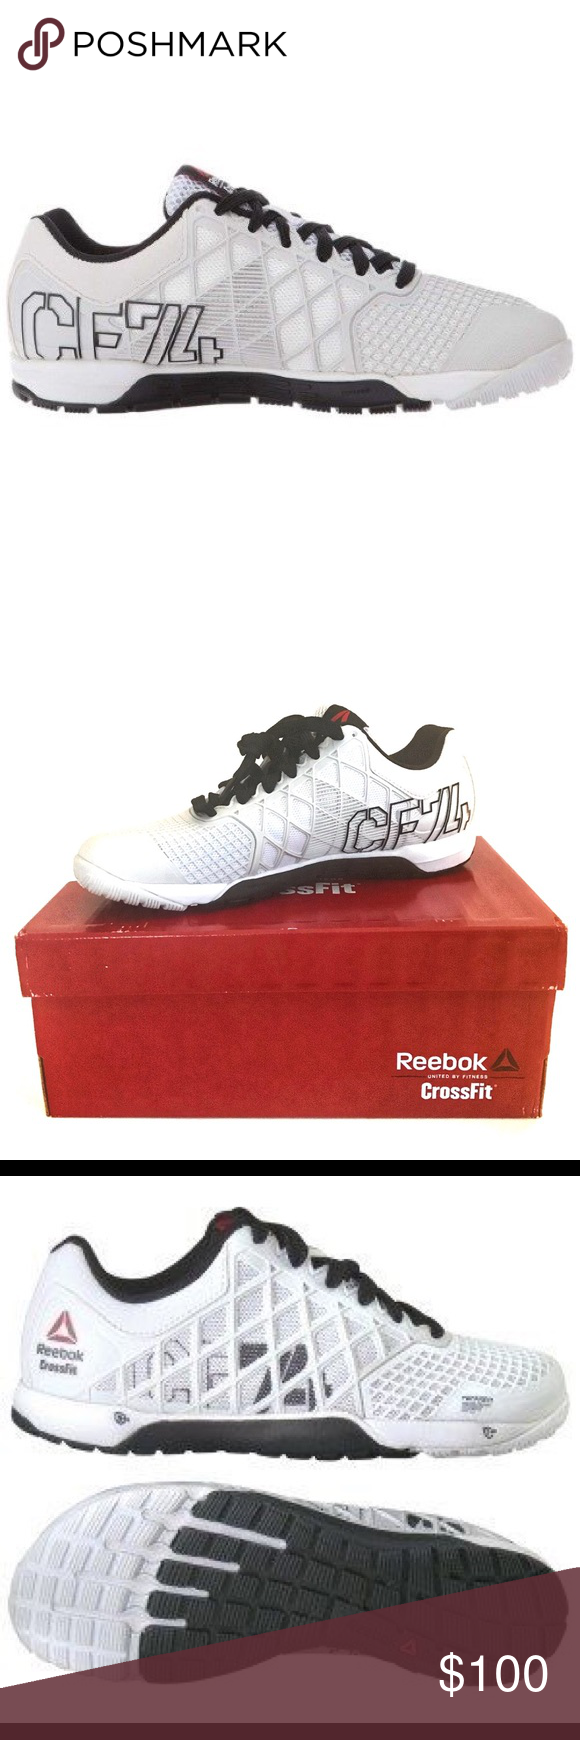 NIB REEBOK CROSSFIT NANO 4.0 PORCELAIN   BLACK NEW IN BOX REEBOK CROSSFIT  NANO 4.0 PORCELAIN cafcf16ee53